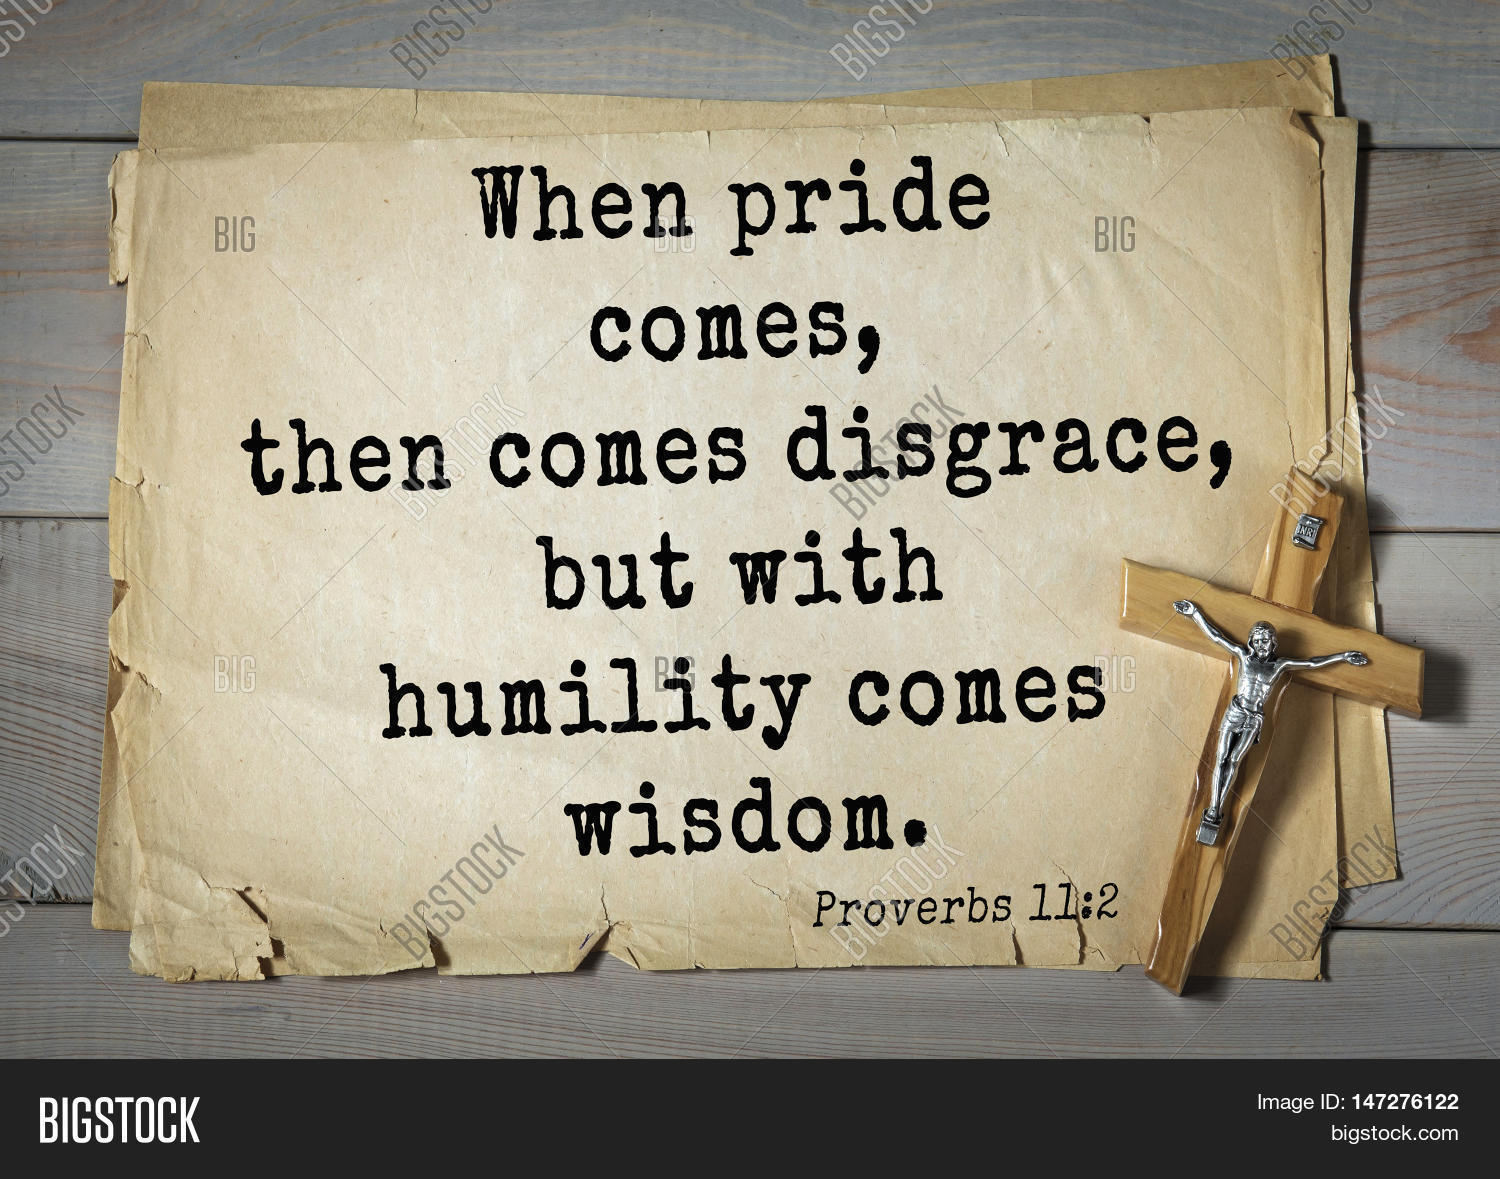 bible verses on humility